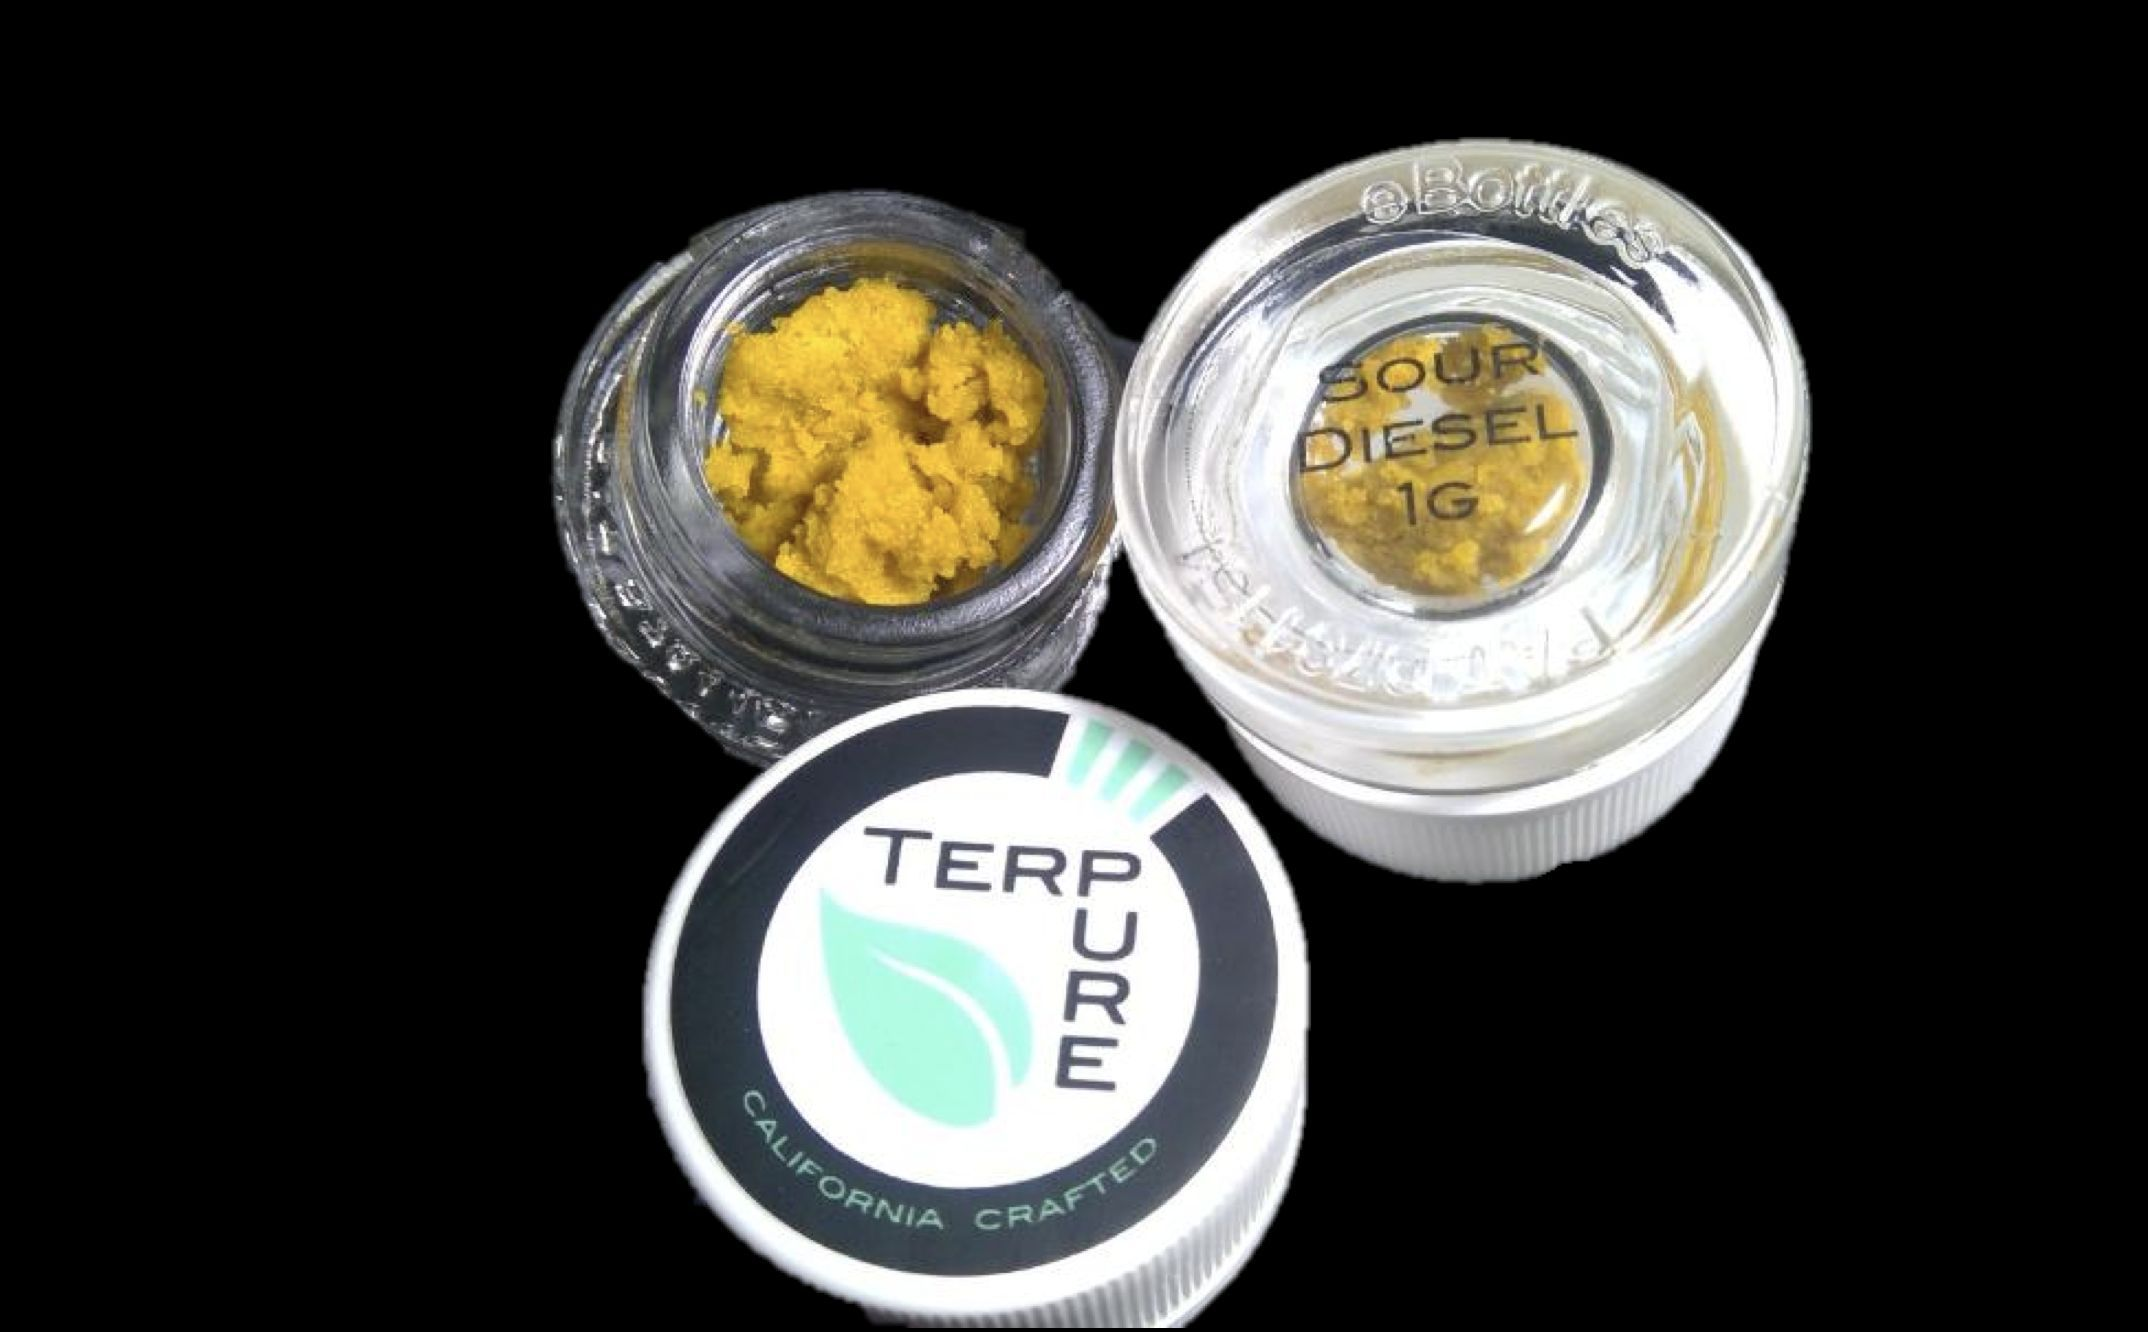 Sour Diesel Crumble (Sativa) by Terpure